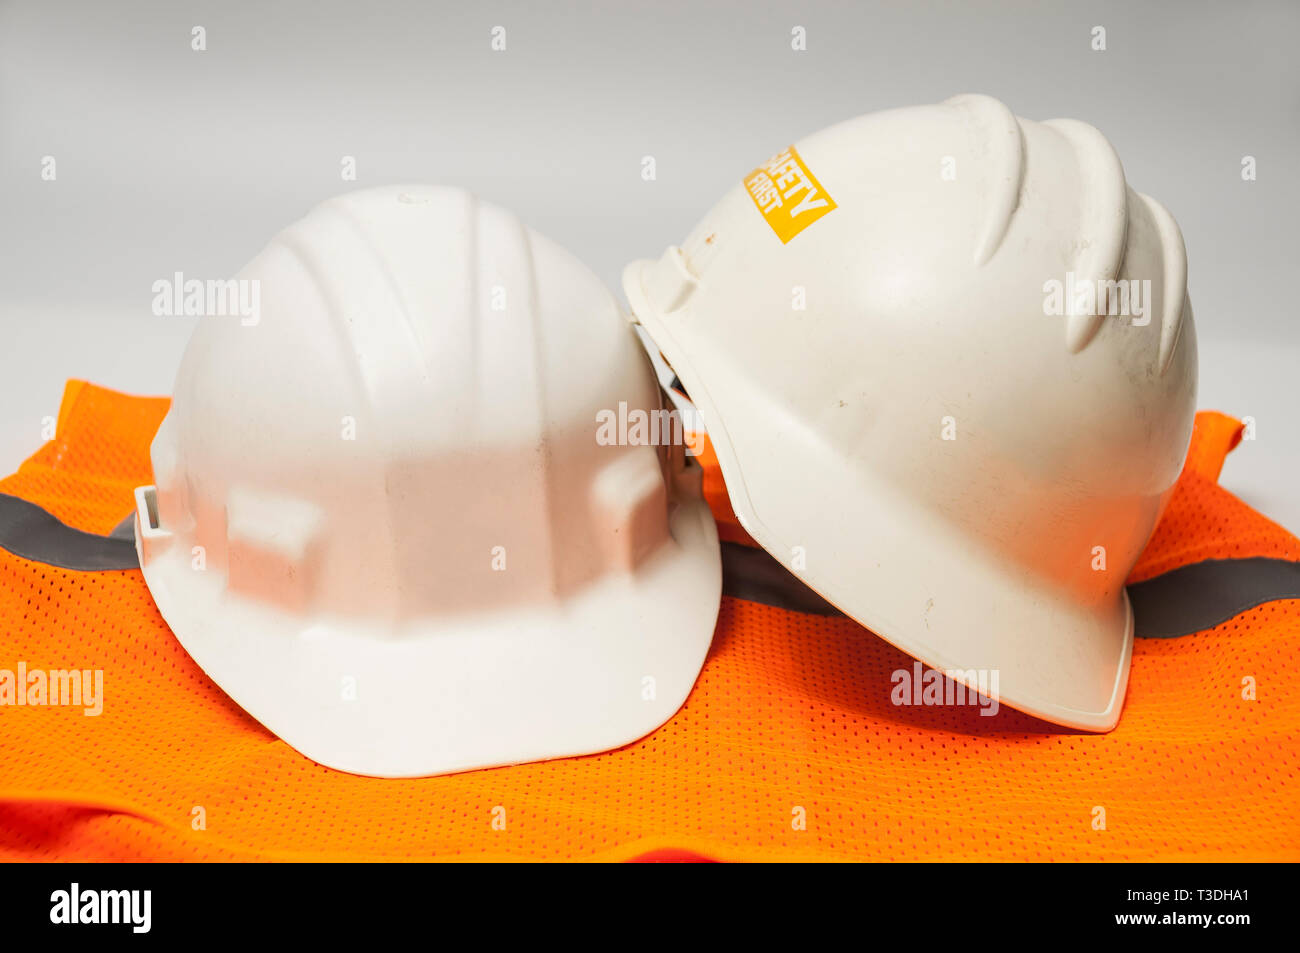 Two used hard hats and an orange vest. - Stock Image